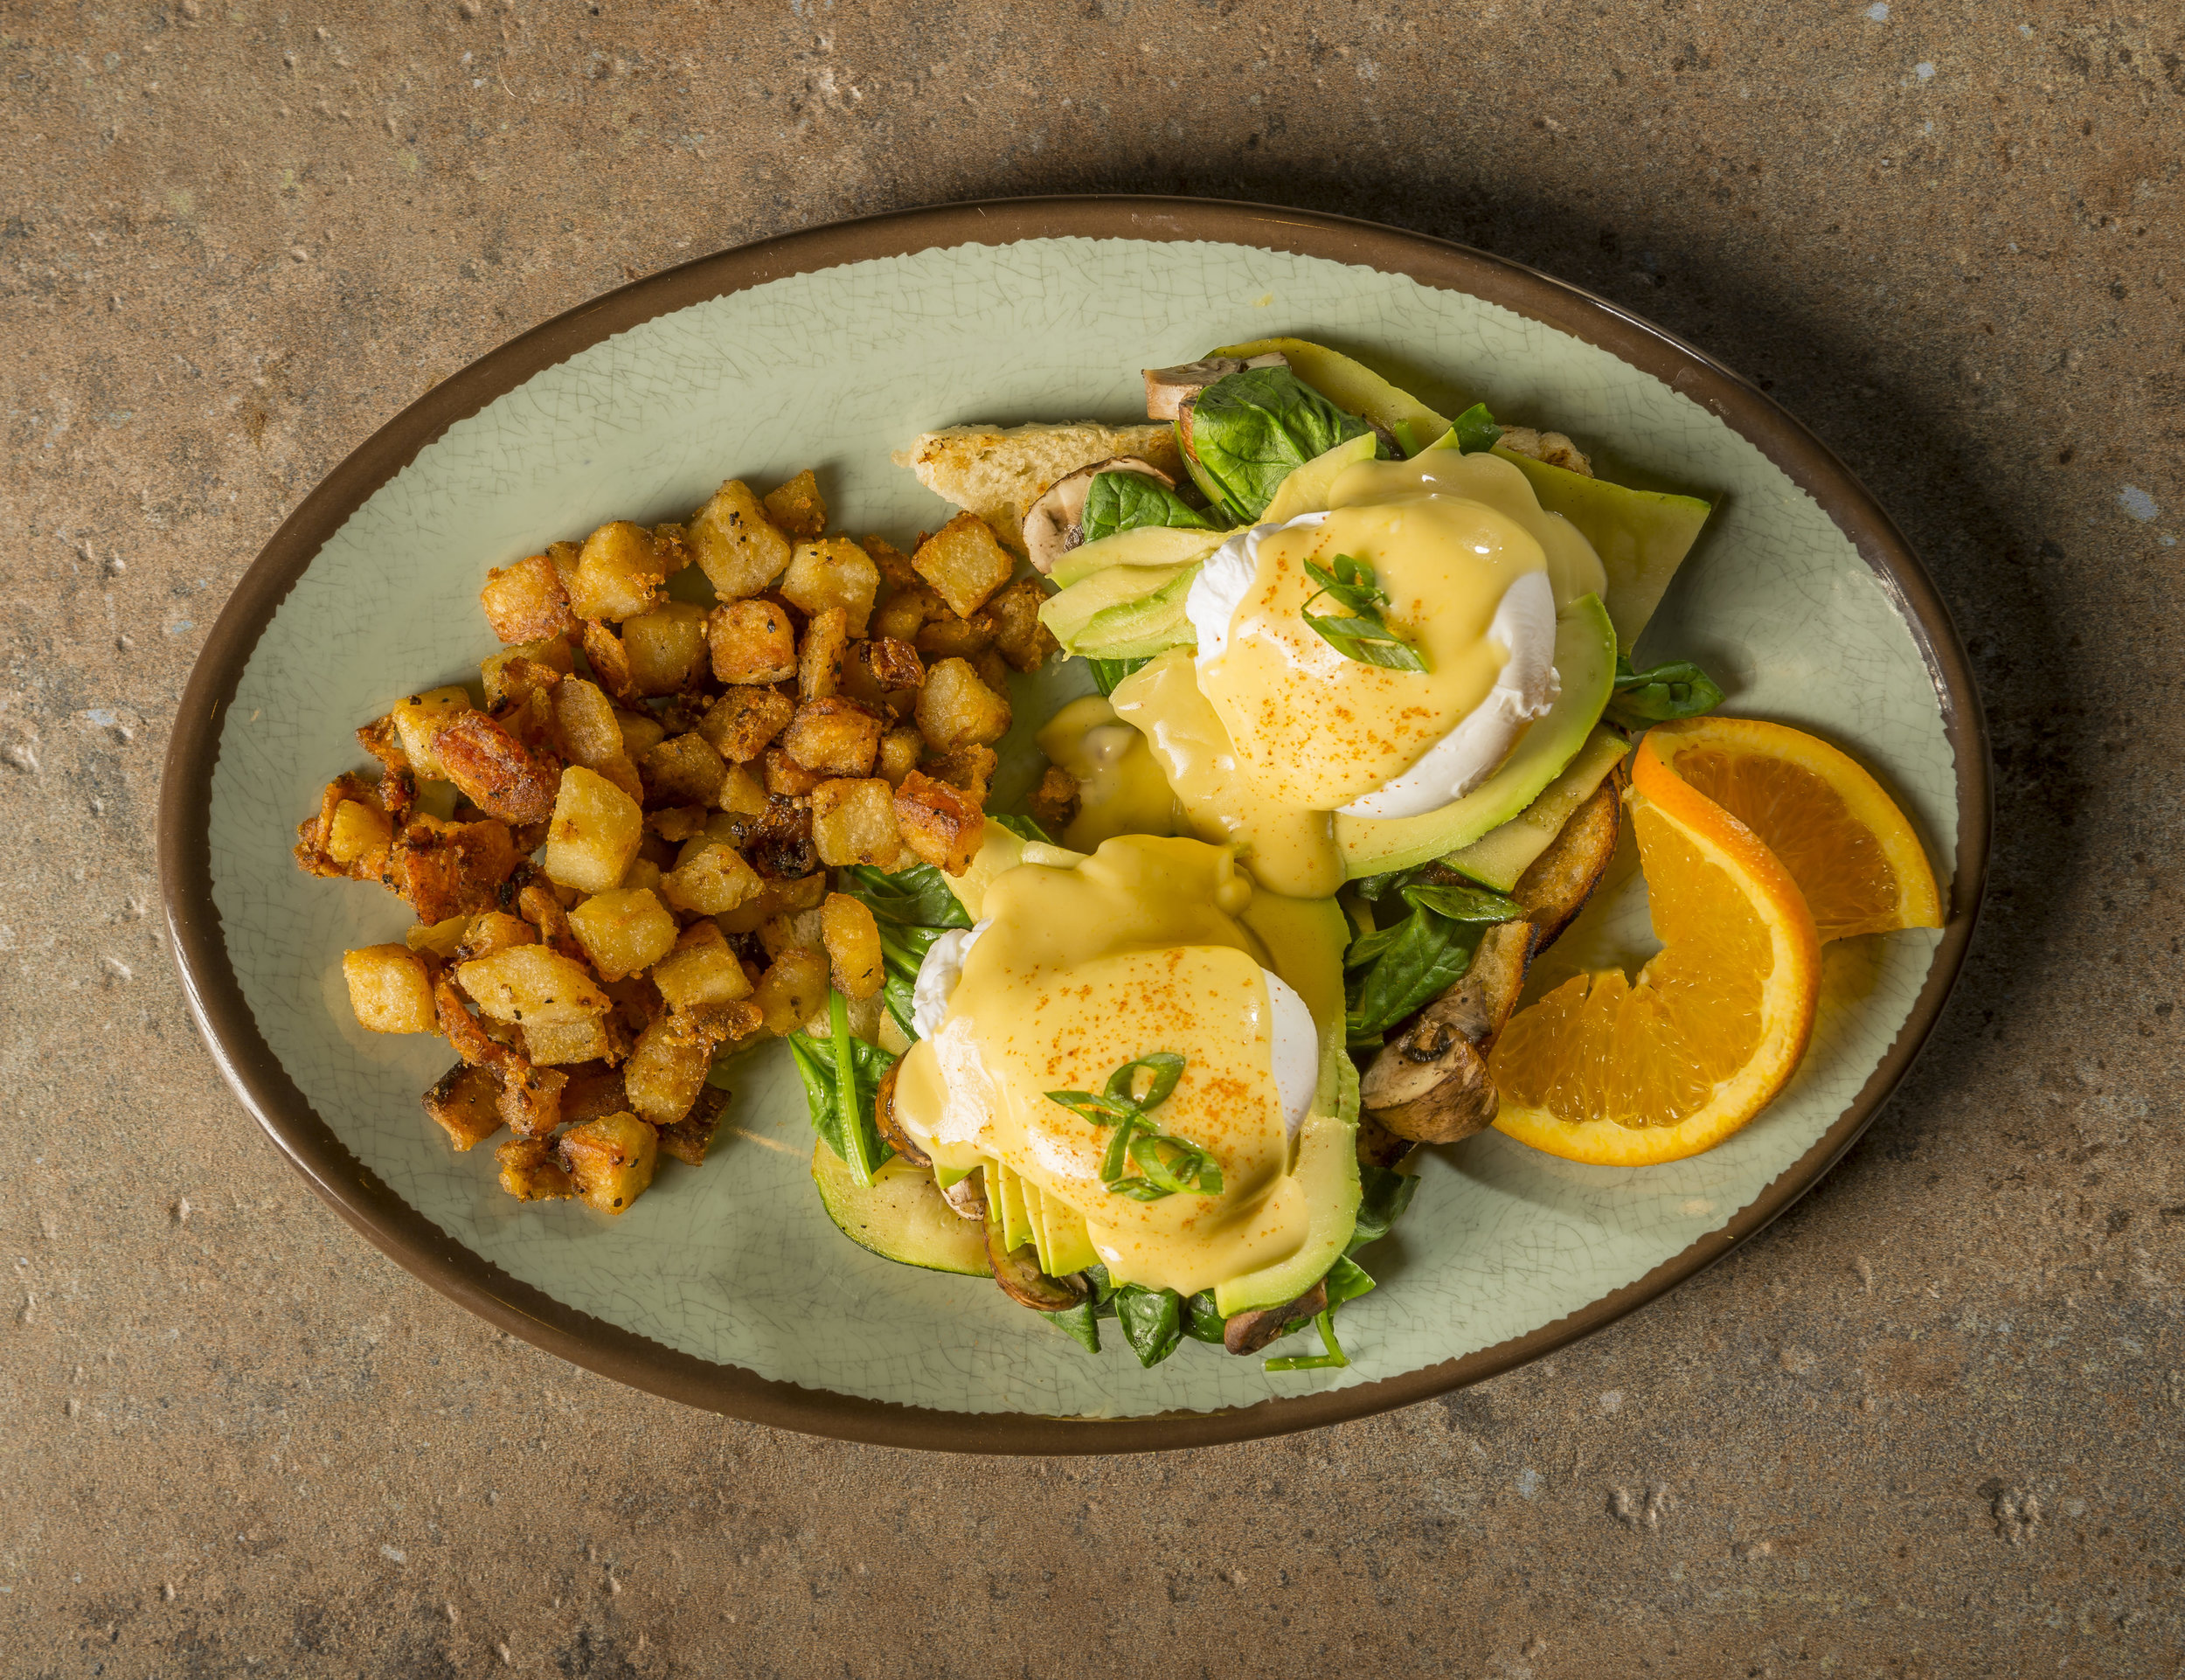 Veggie Benedict - Poached eggs, zucchini, mushrooms, spinach & avocado and Hollandaise on FTH sourdough.$9.99